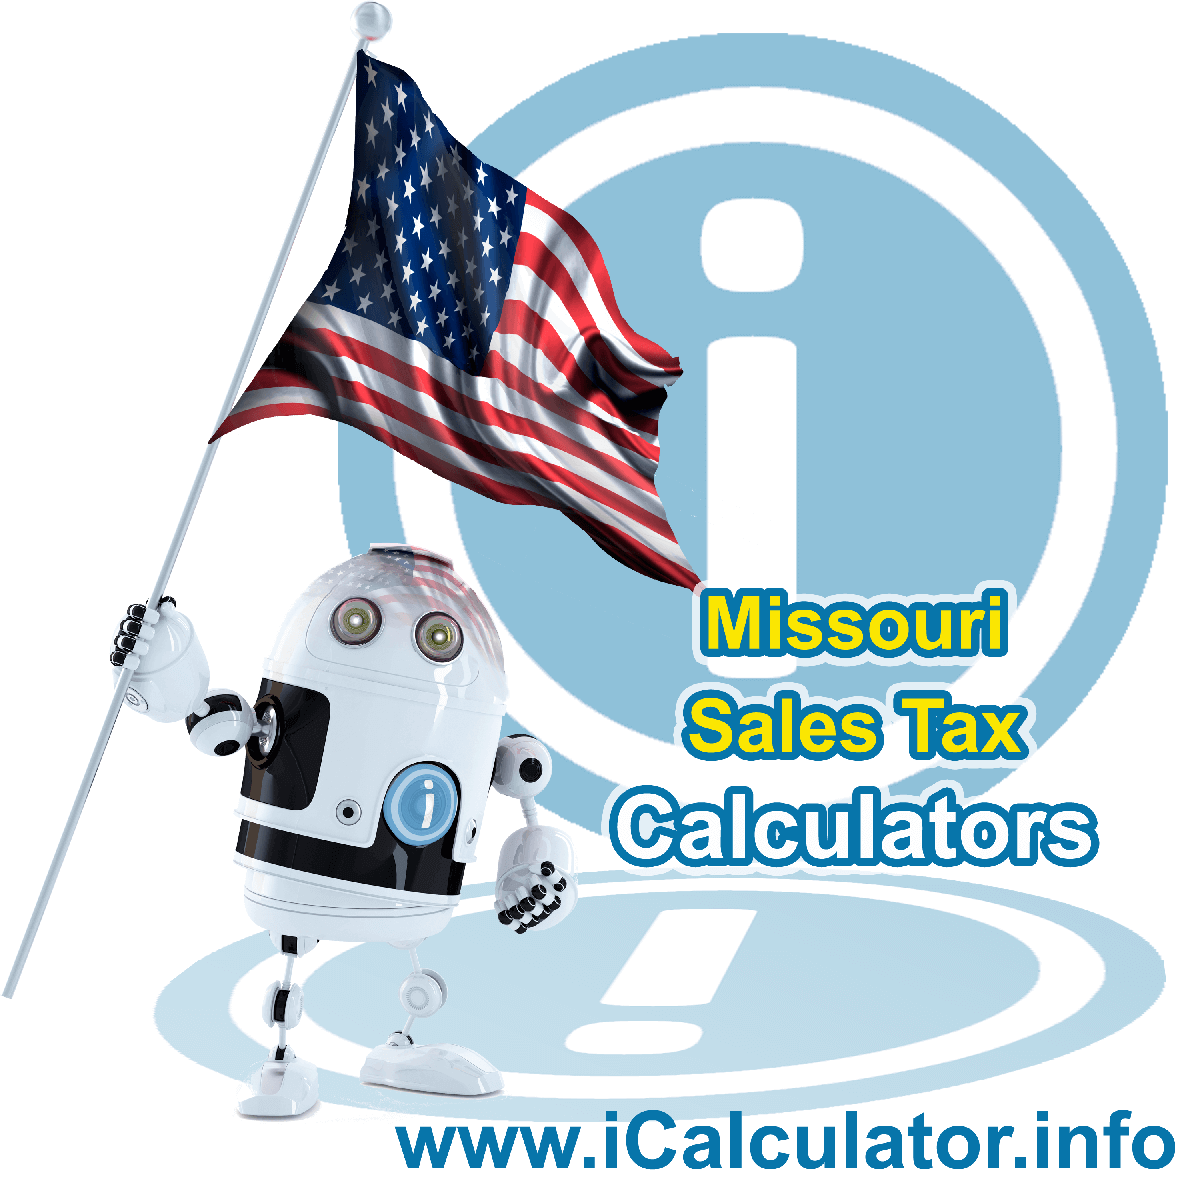 Missouri Sales Tax Comparison Calculator: This image illustrates a calculator robot comparing sales tax in Missouri manually using the Missouri Sales Tax Formula. You can use this information to compare Sales Tax manually or use the Missouri Sales Tax Comparison Calculator to calculate and compare Missouri sales tax online.